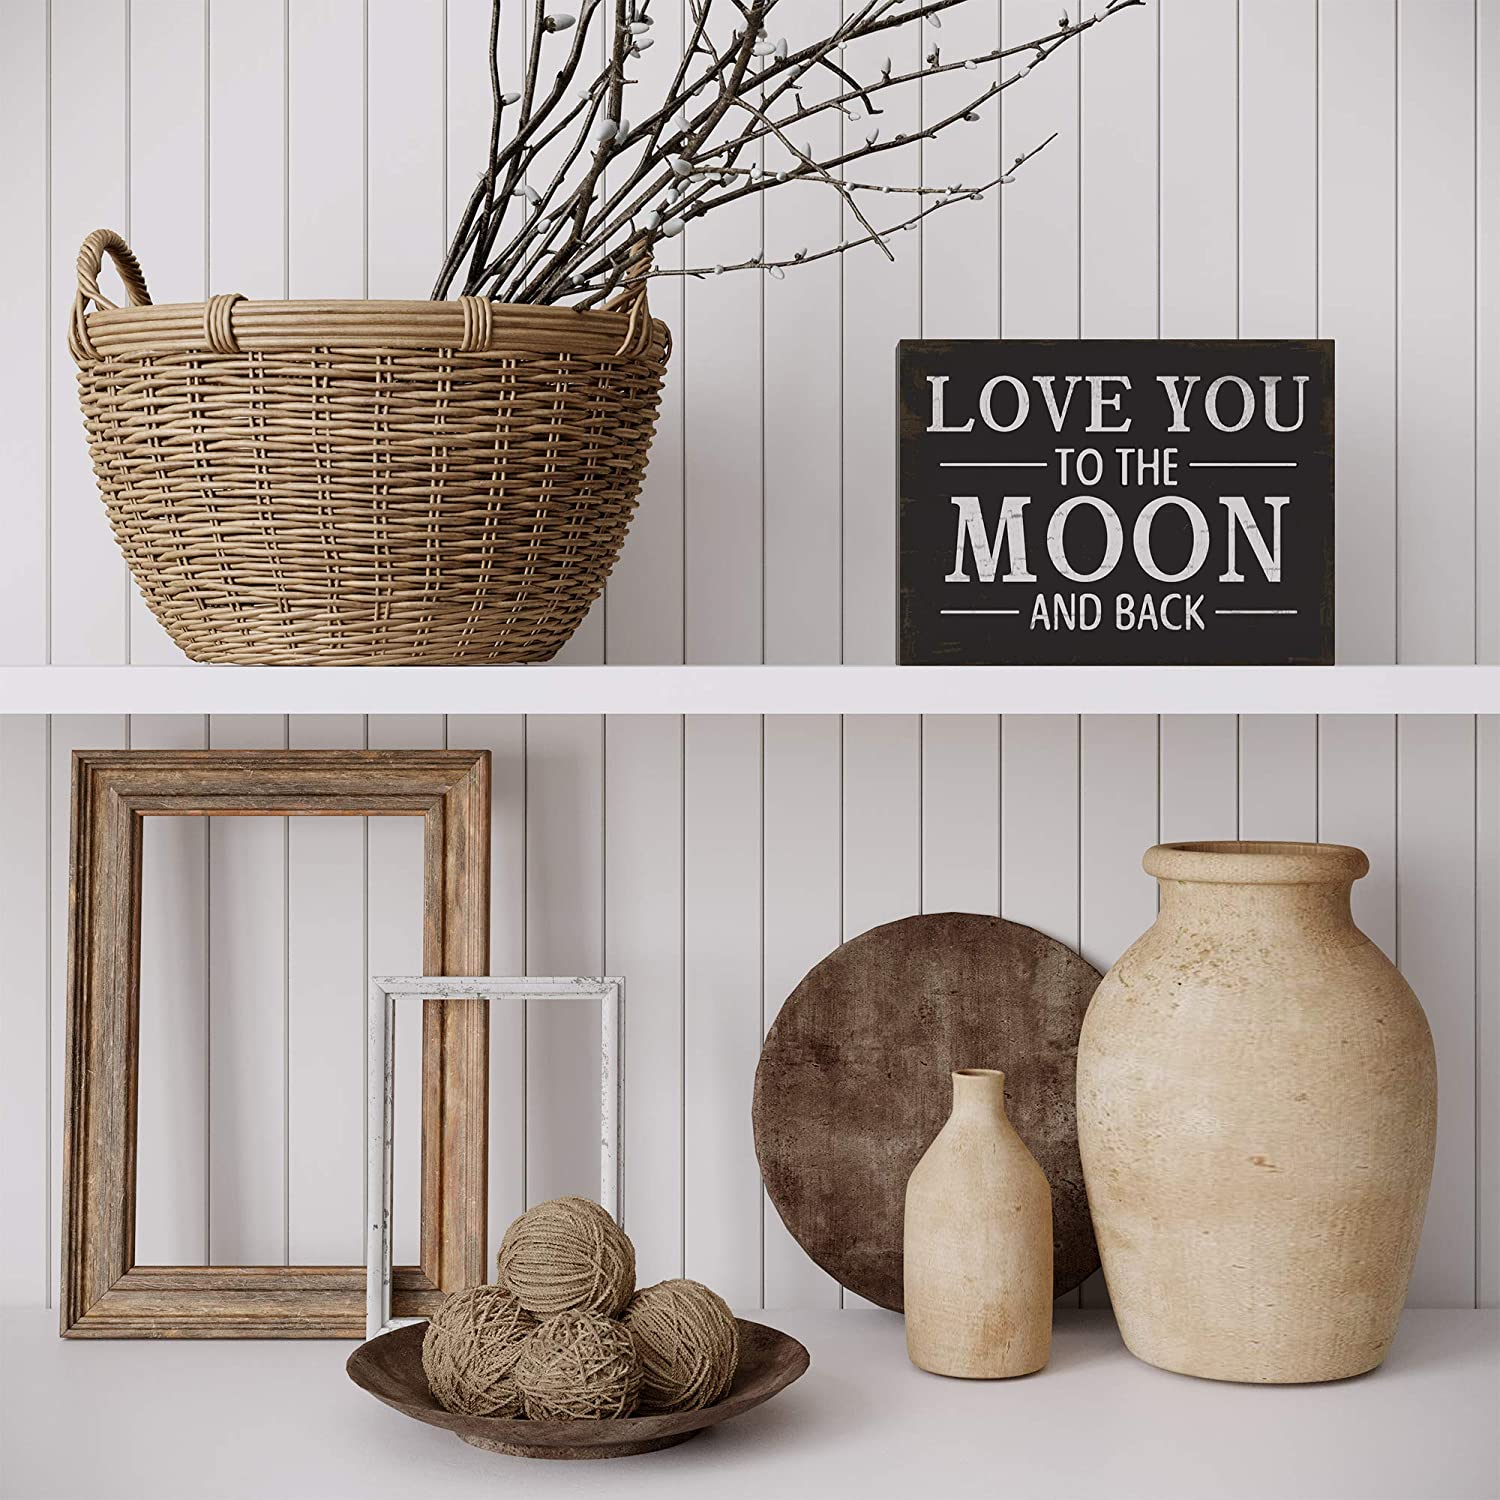 Affordable gifts small sign Rustic farmhouse style. Gifts under 10 Wooden plaque I love you to the moon and back Table top decor